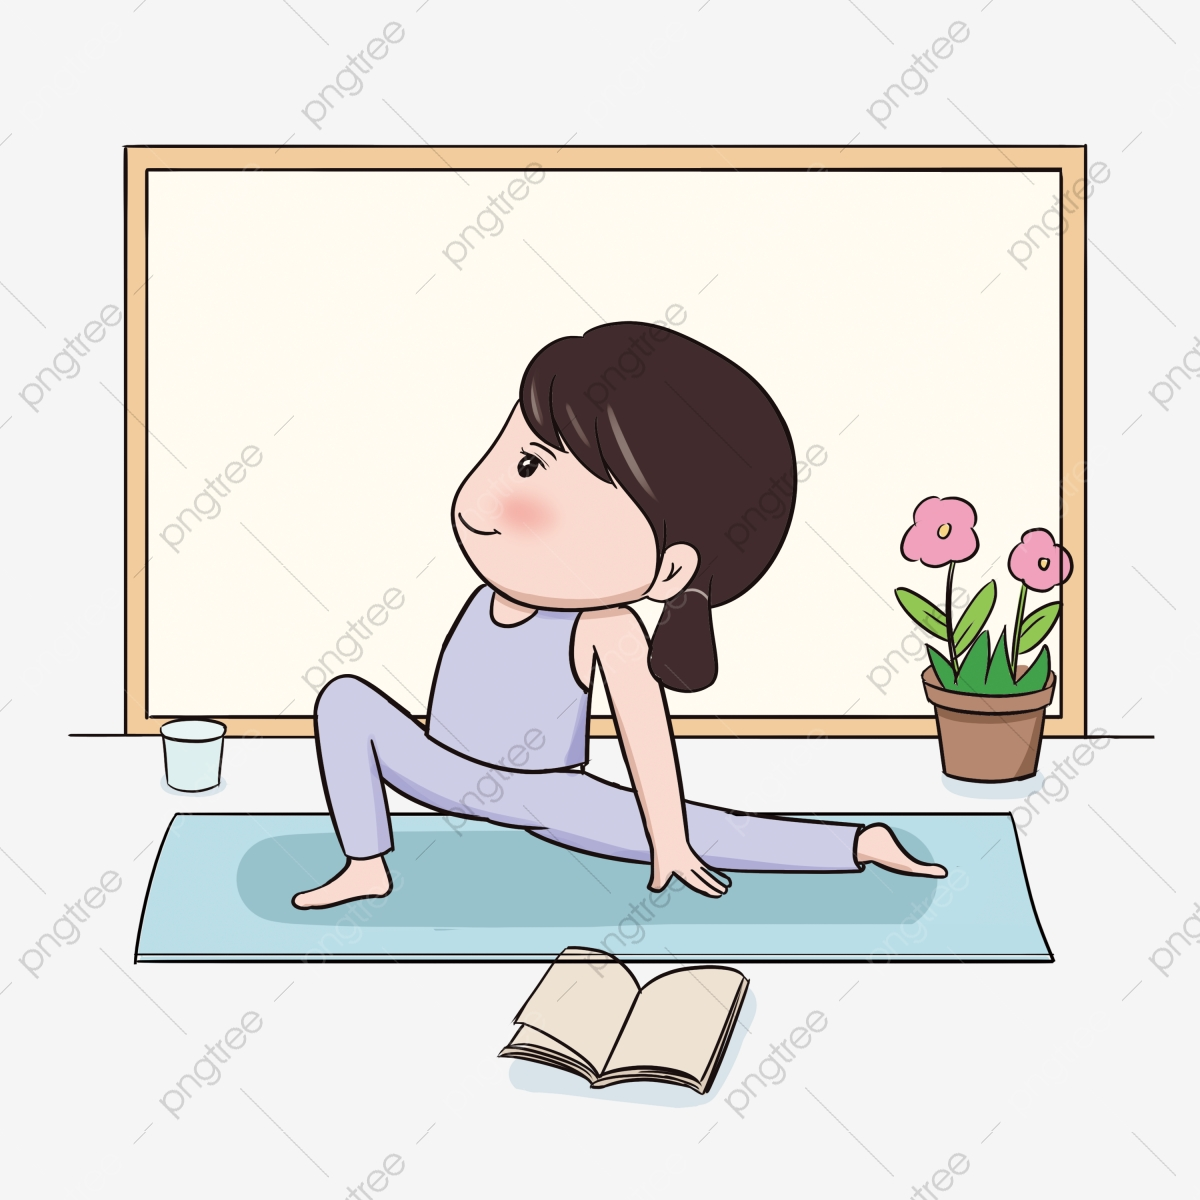 Fitness Body Action Posture Stretch Leg Movement Water Cup Flower Png Transparent Clipart Image And Psd File For Free Download